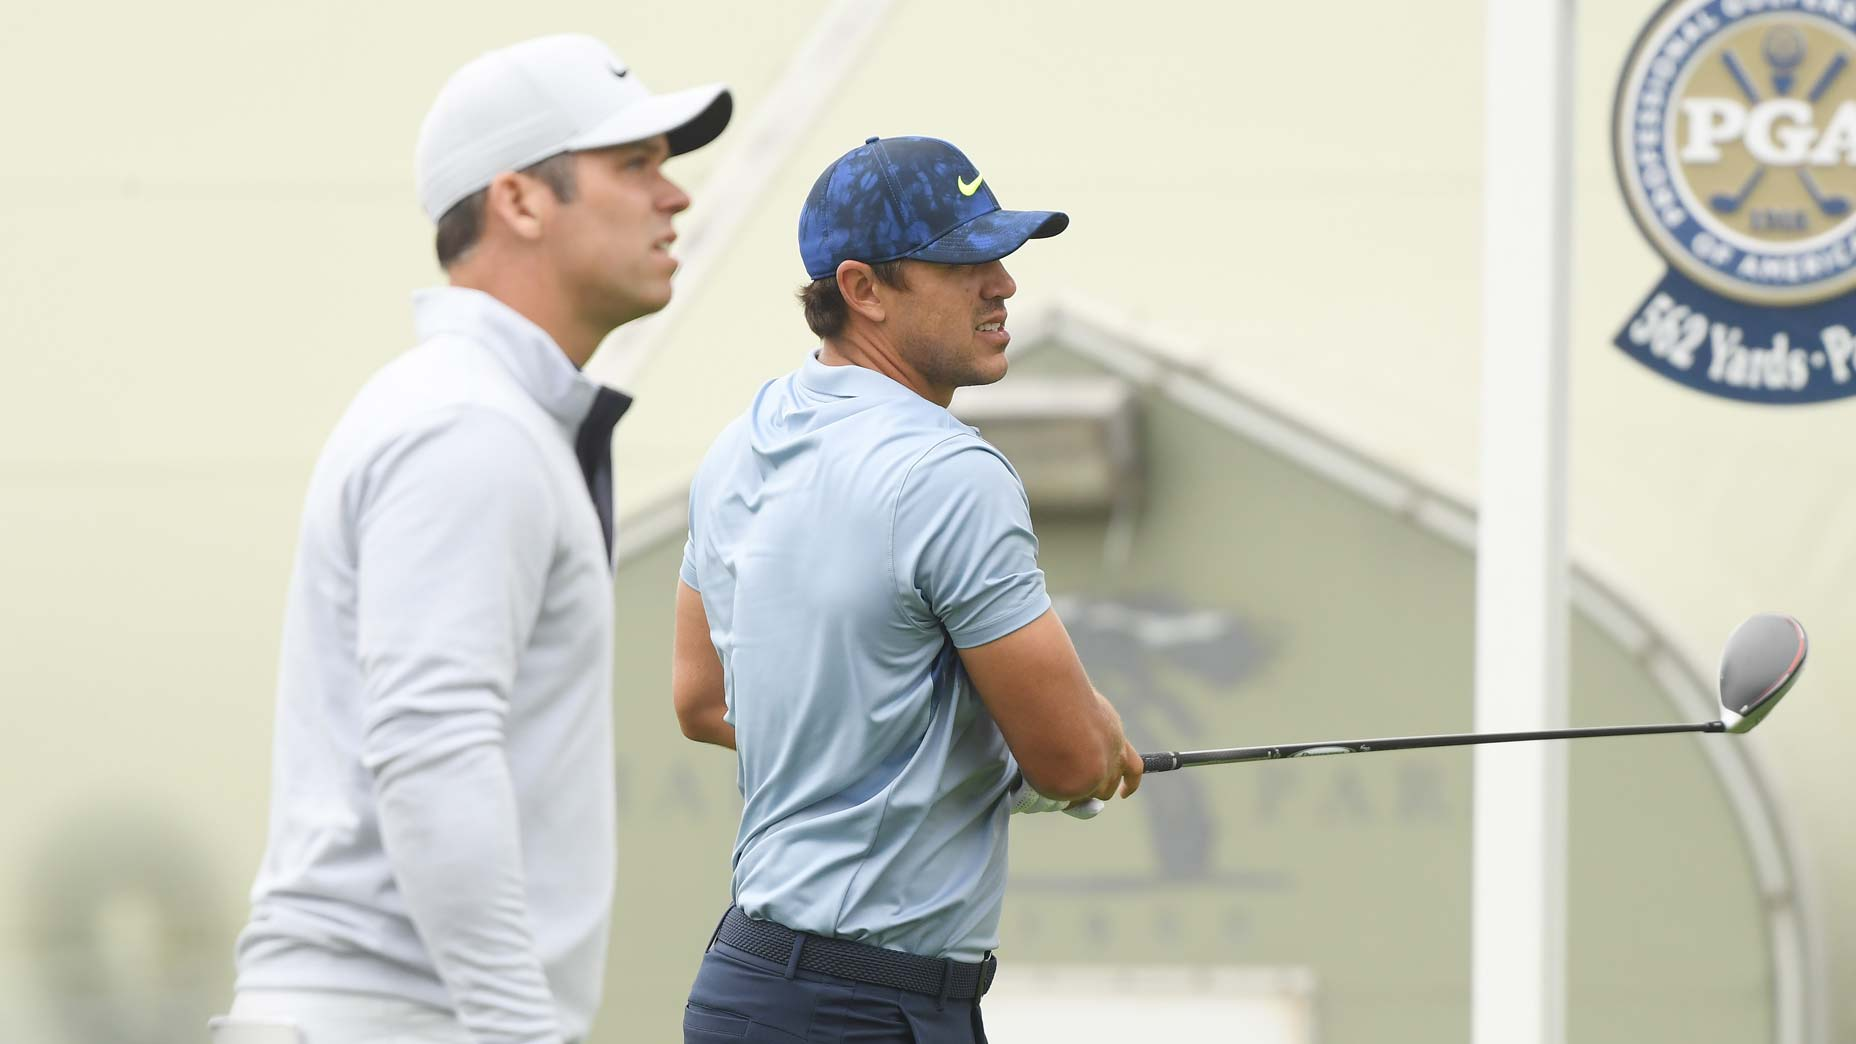 Pro golfers Brooks Koepka and Paul Casey